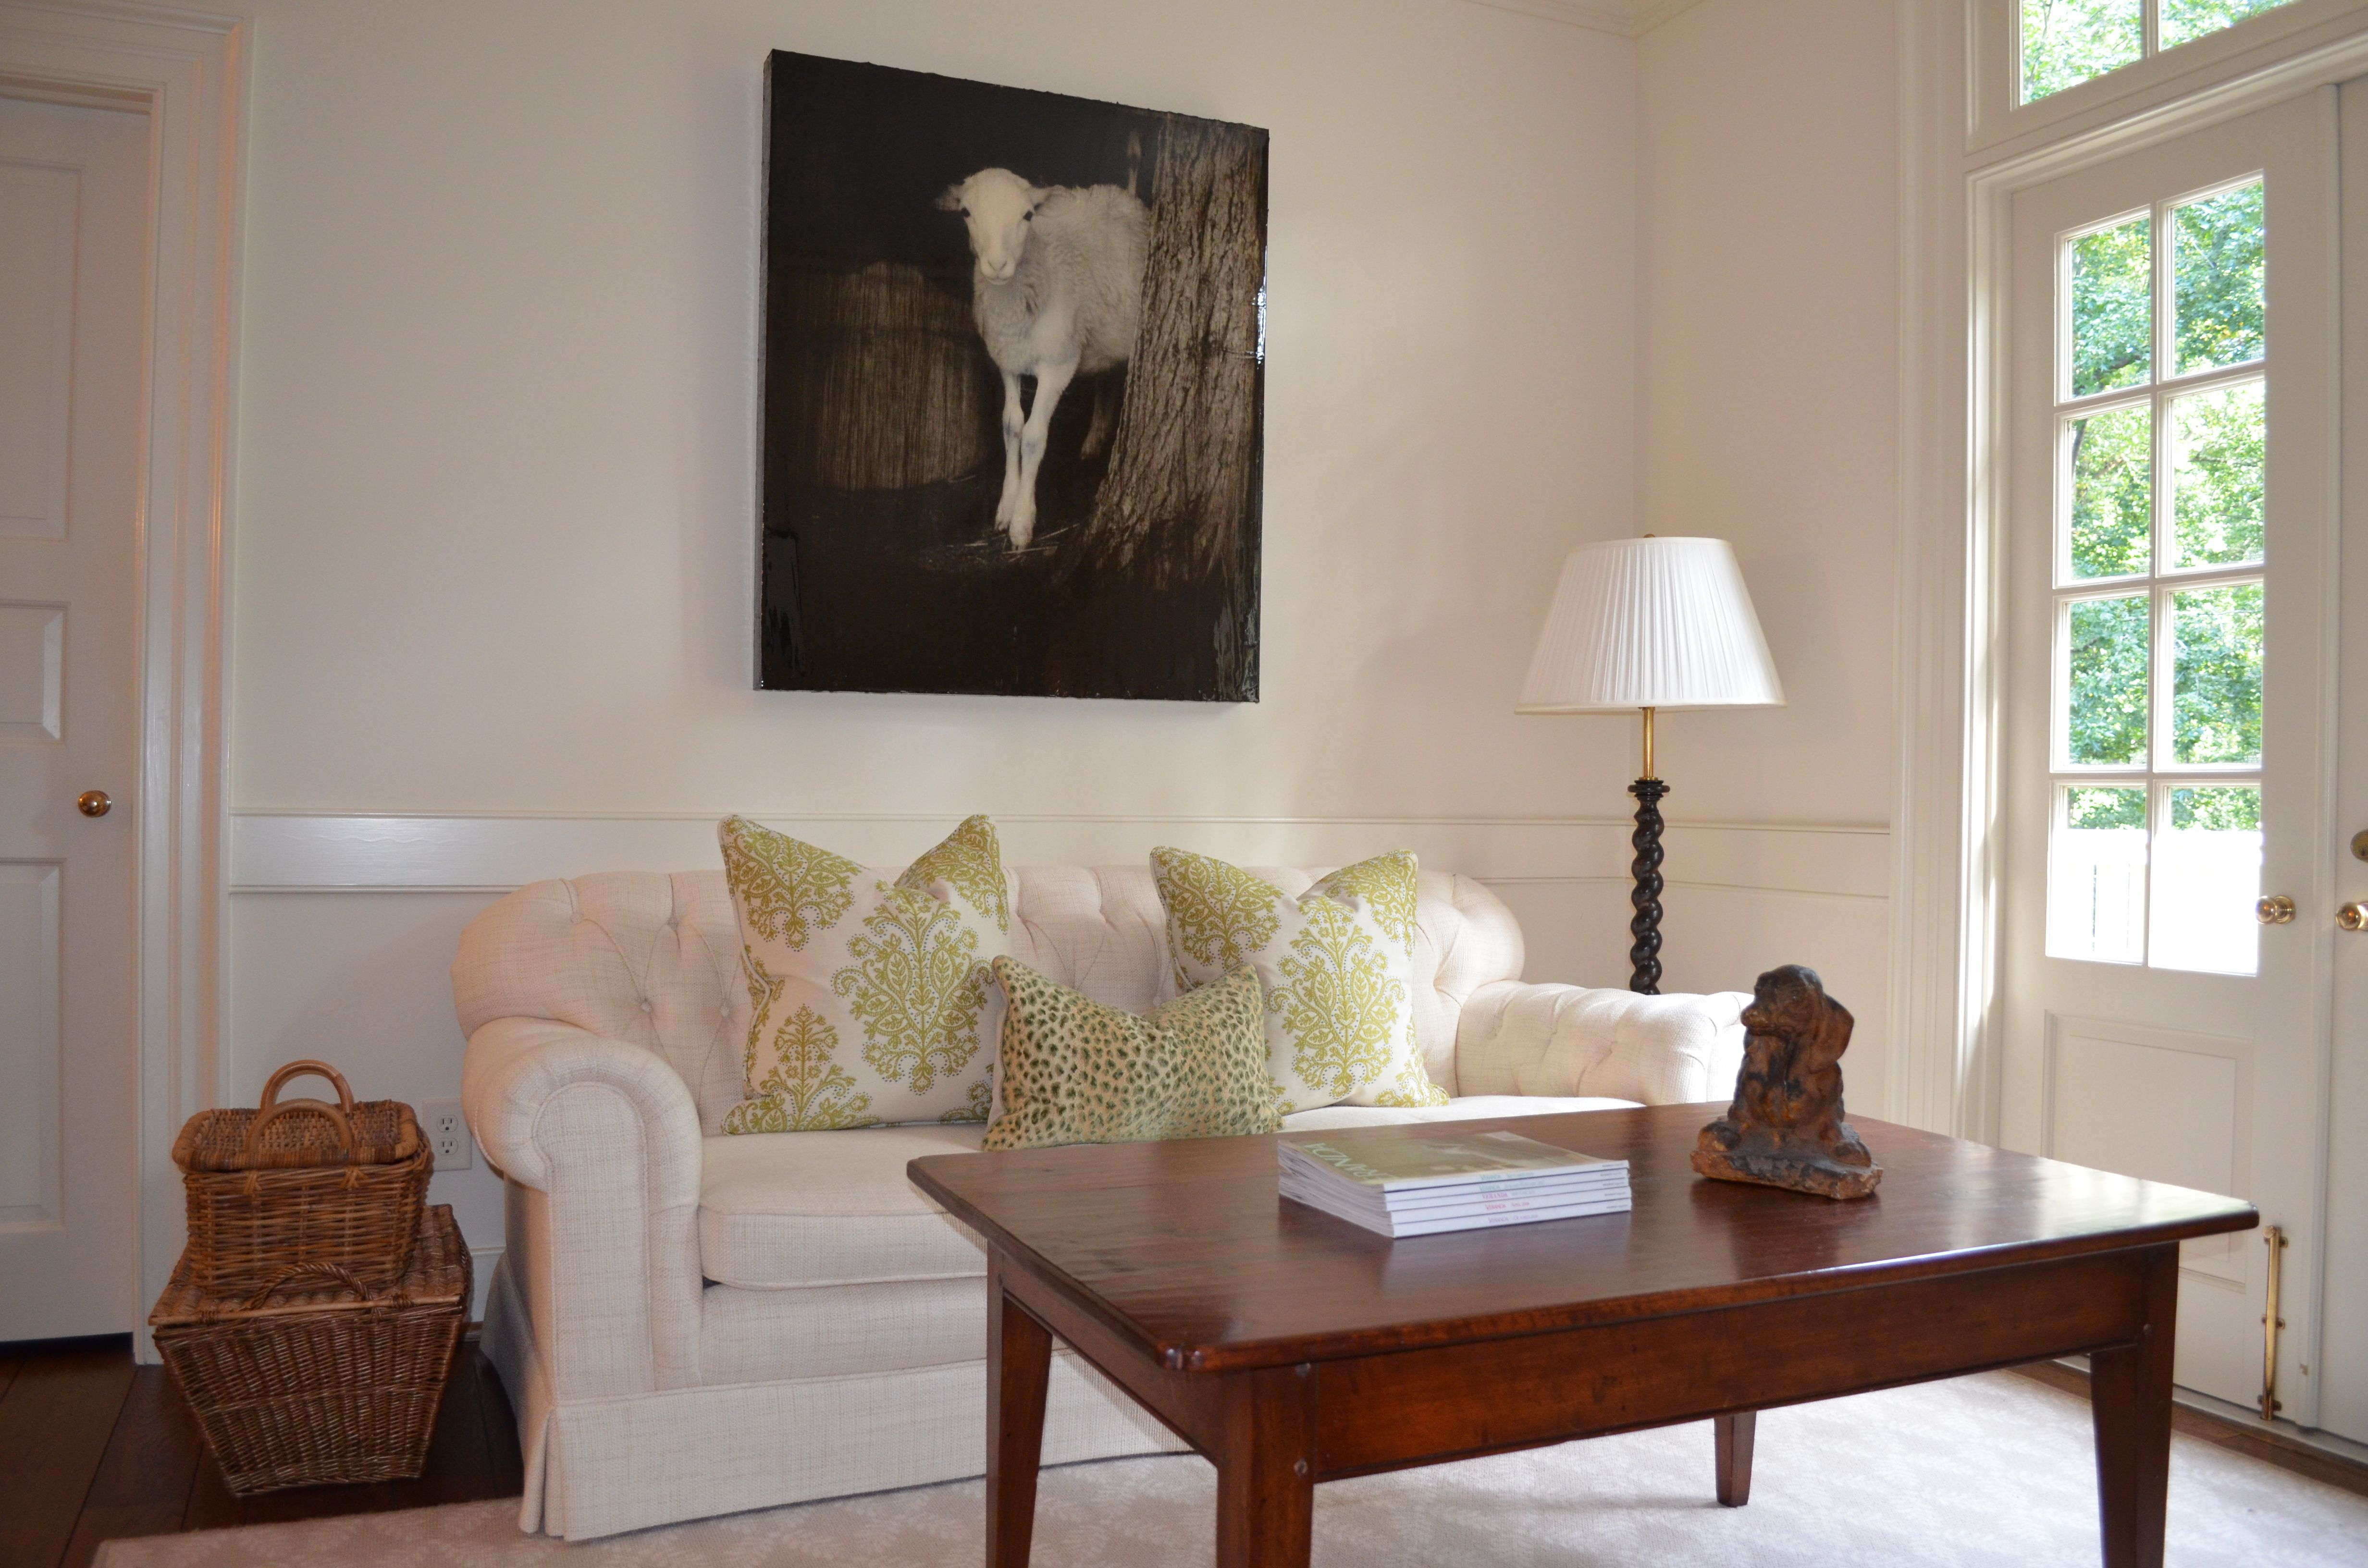 zaragracehome com master bedroom sitting area and a cup of tea rh co pinterest com